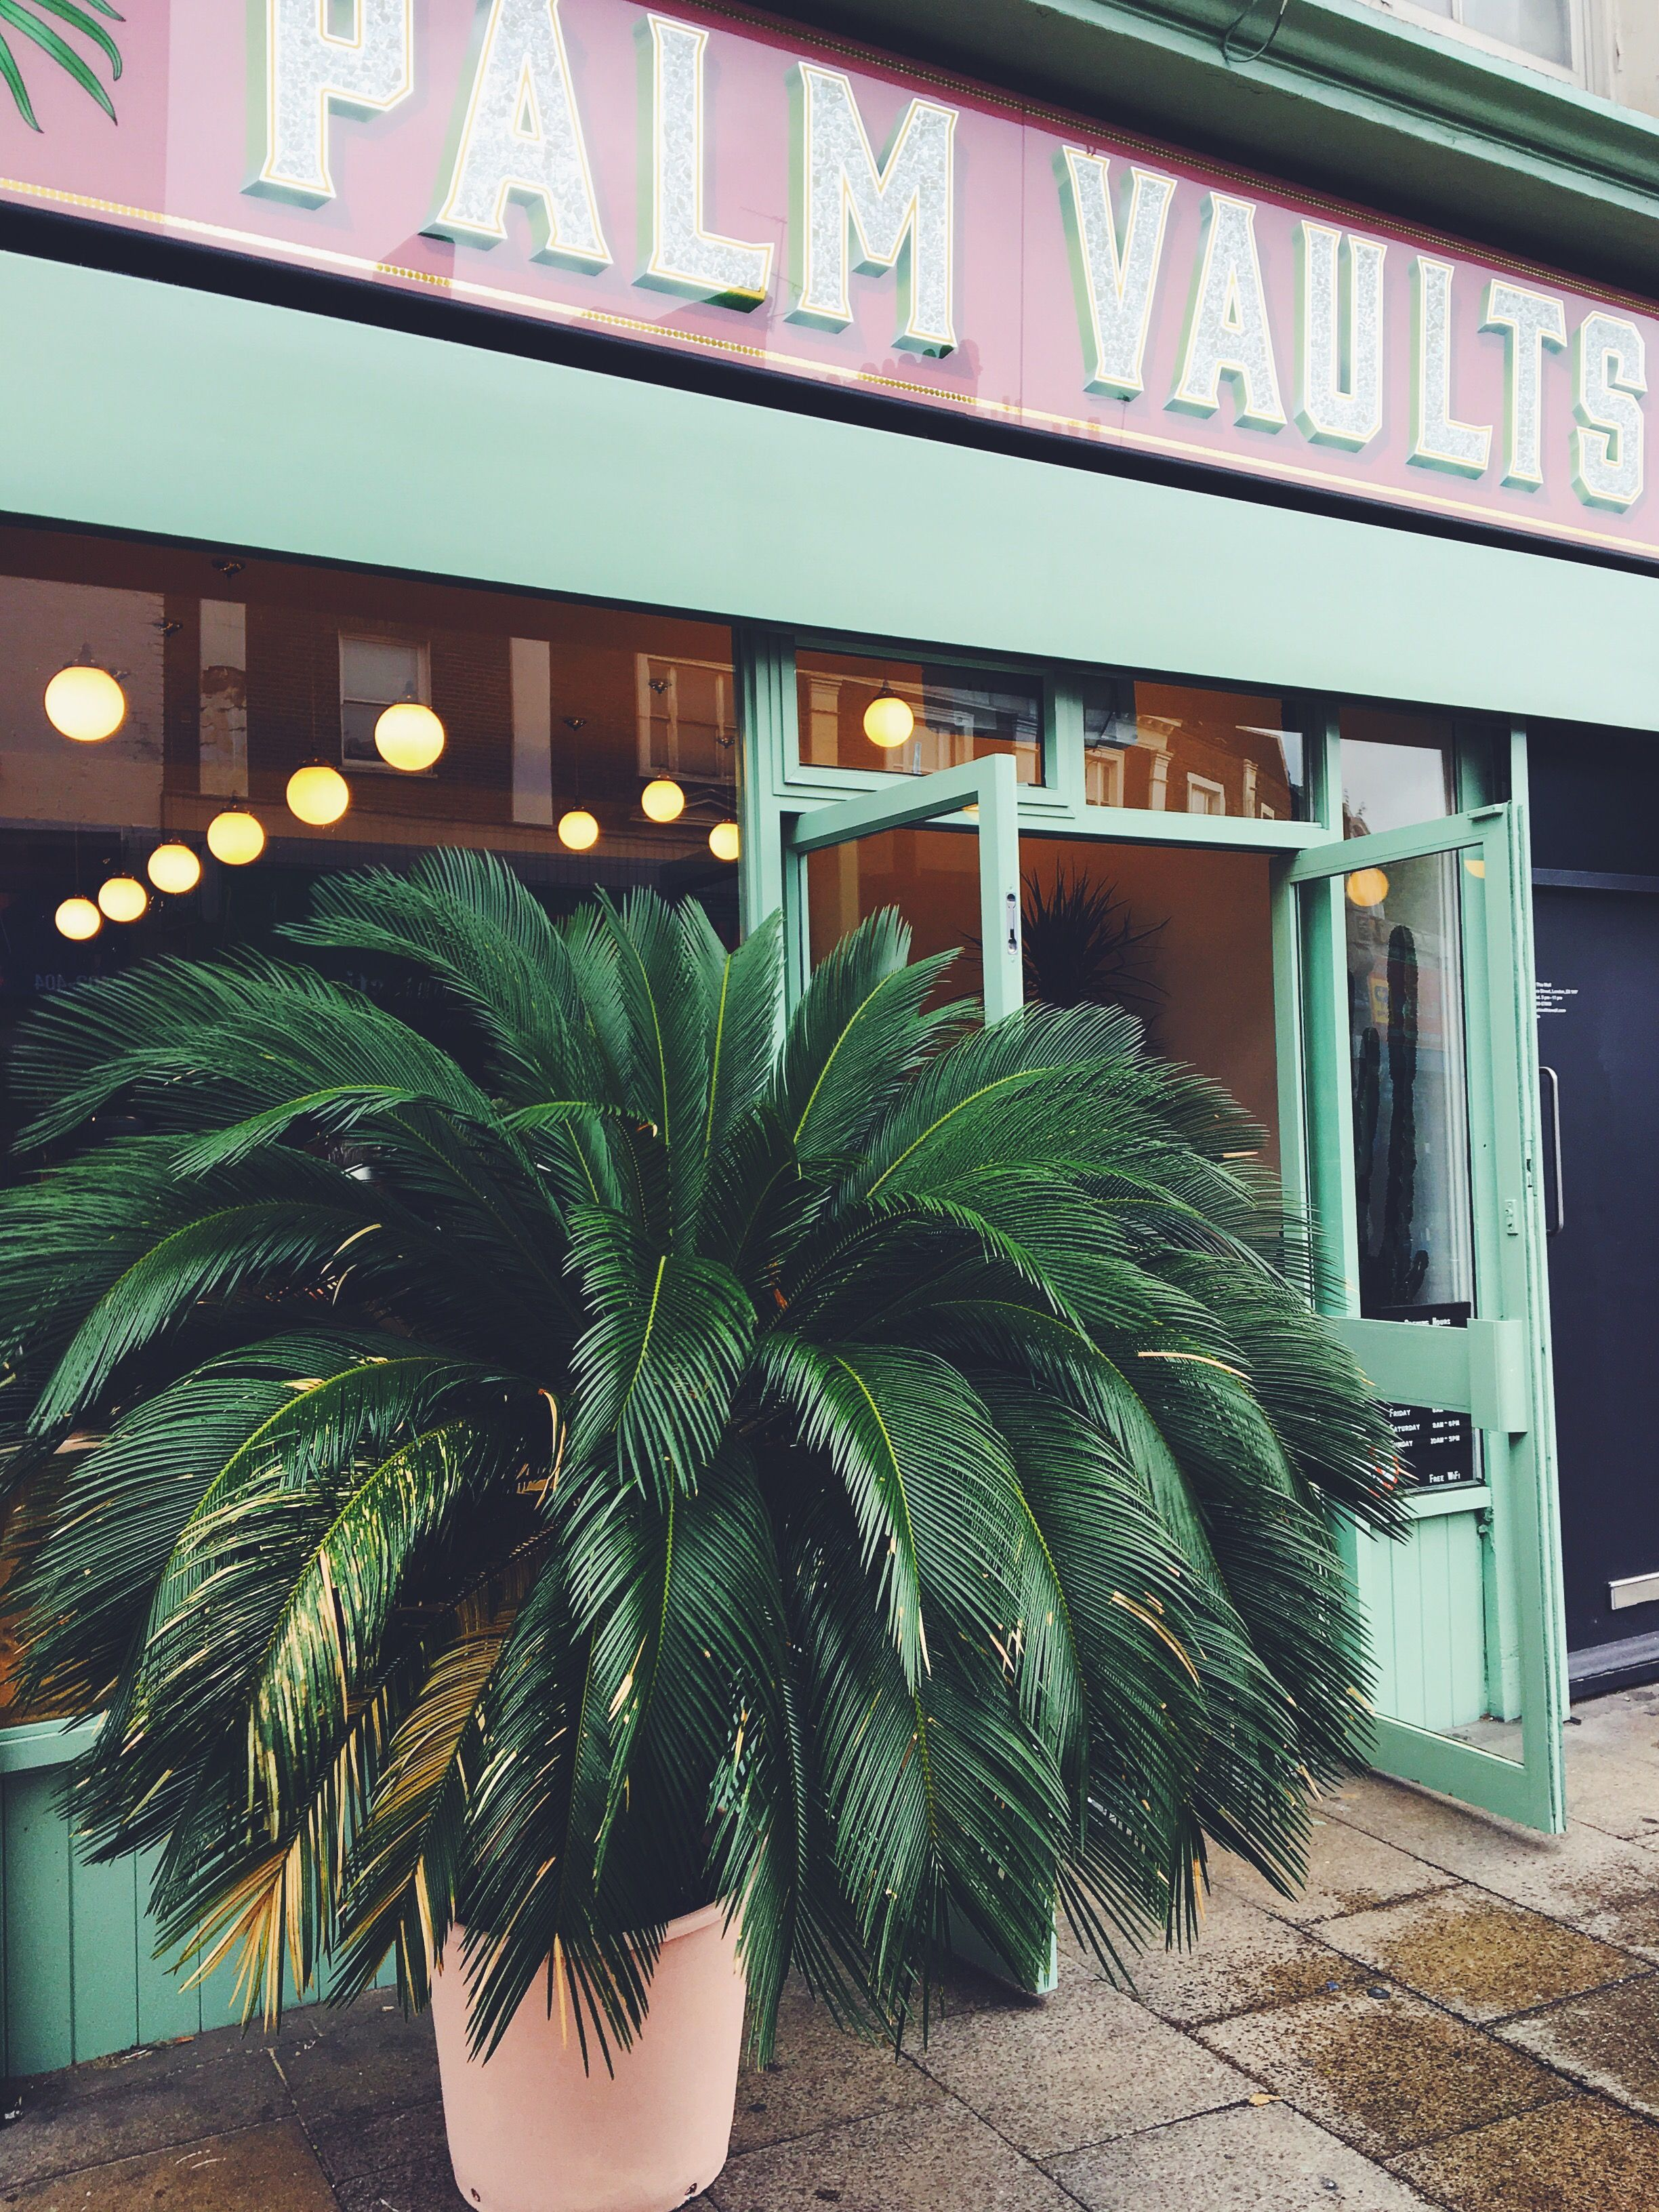 Londons Most Instagram Friendly Cafe Hackneys Palm Vaults